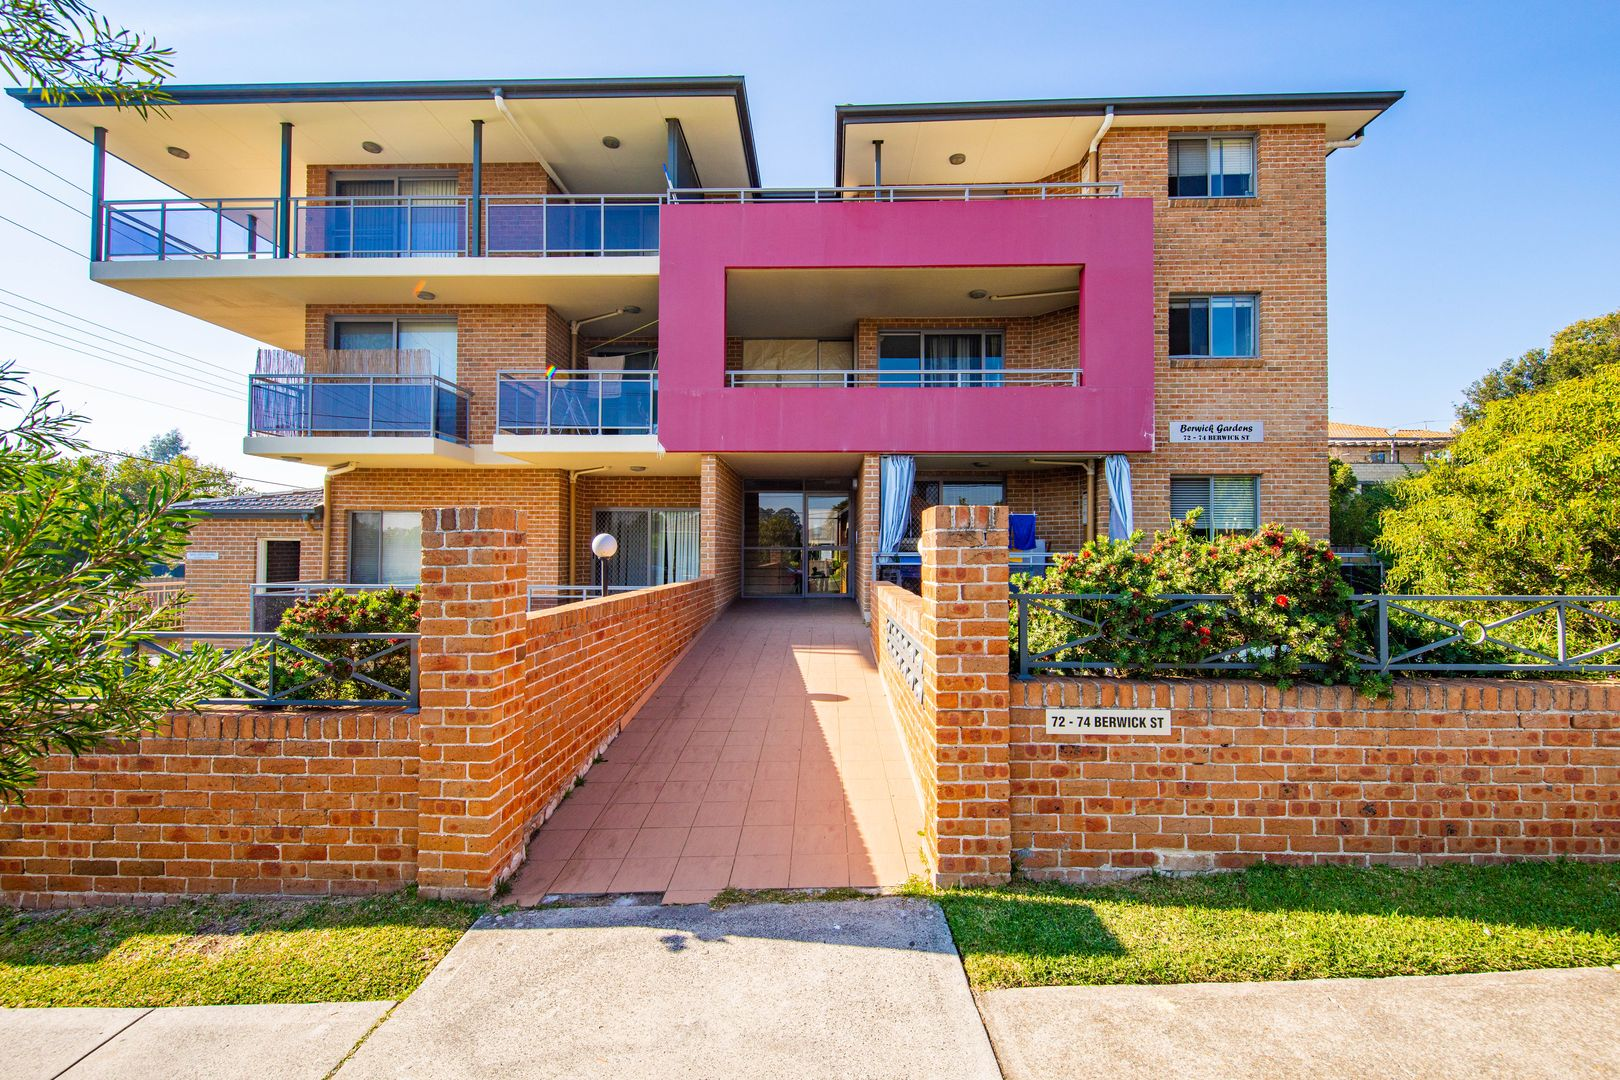 9/72-74 Berwick St, Guildford NSW 2161, Image 0